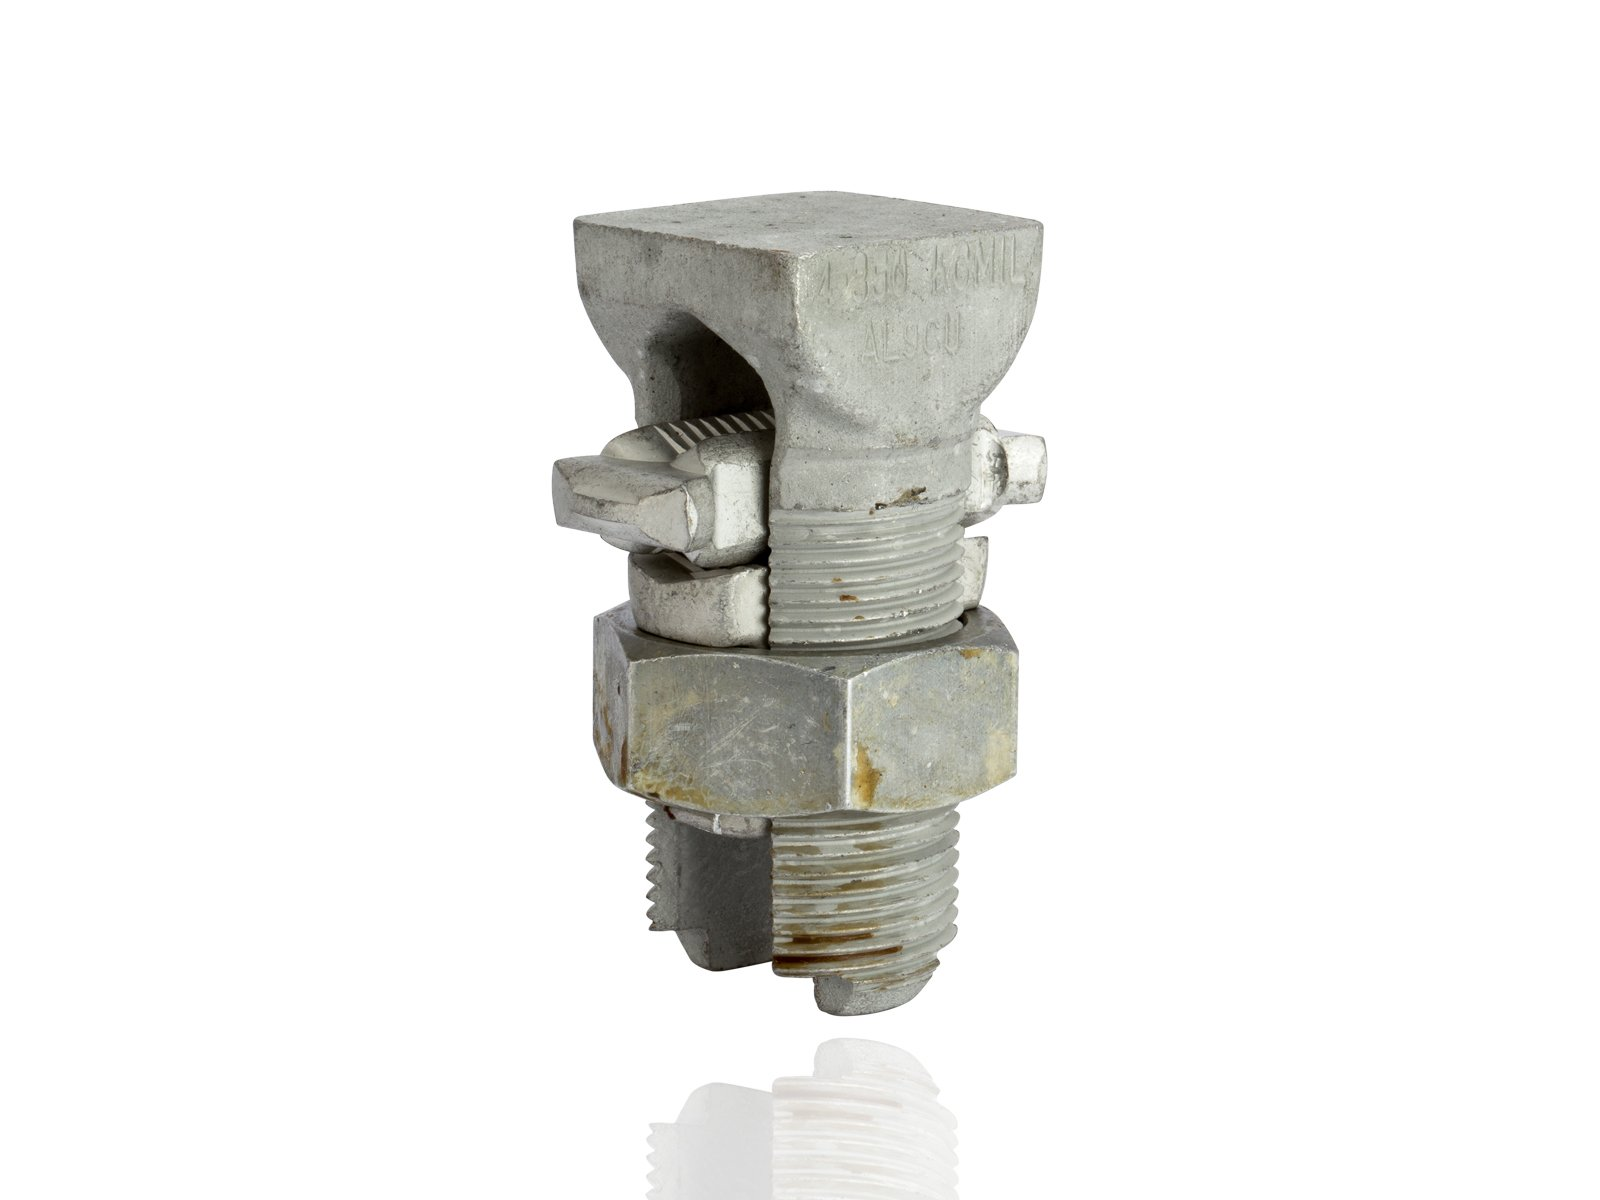 Aluminum Dual-Rated Split Bolt - APS Series, 0.414'' - 0.681'' Wire Diameter Range, 650lbs Torque